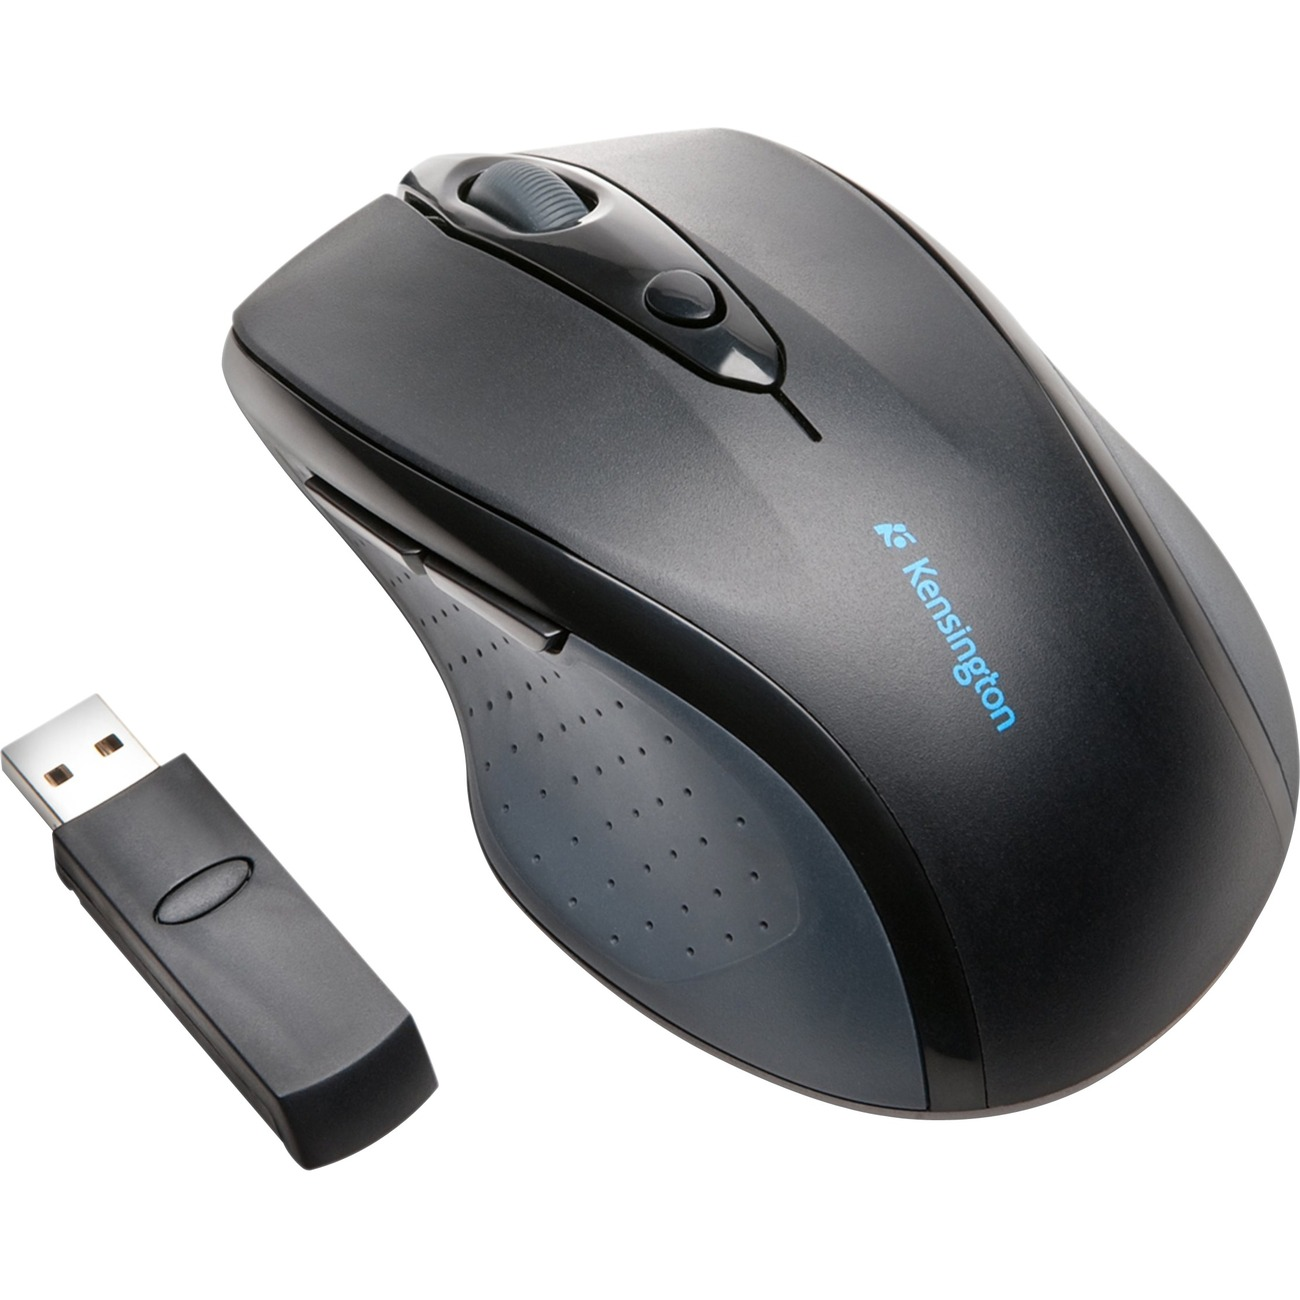 bdd0afb4d81 Merritt Printing :: Technology :: Peripherals & Memory :: Keyboards & Mice  :: Mice :: Kensington 2.4GHZ Wireless Optical Mouse - Optical - Wireless -  Radio ...